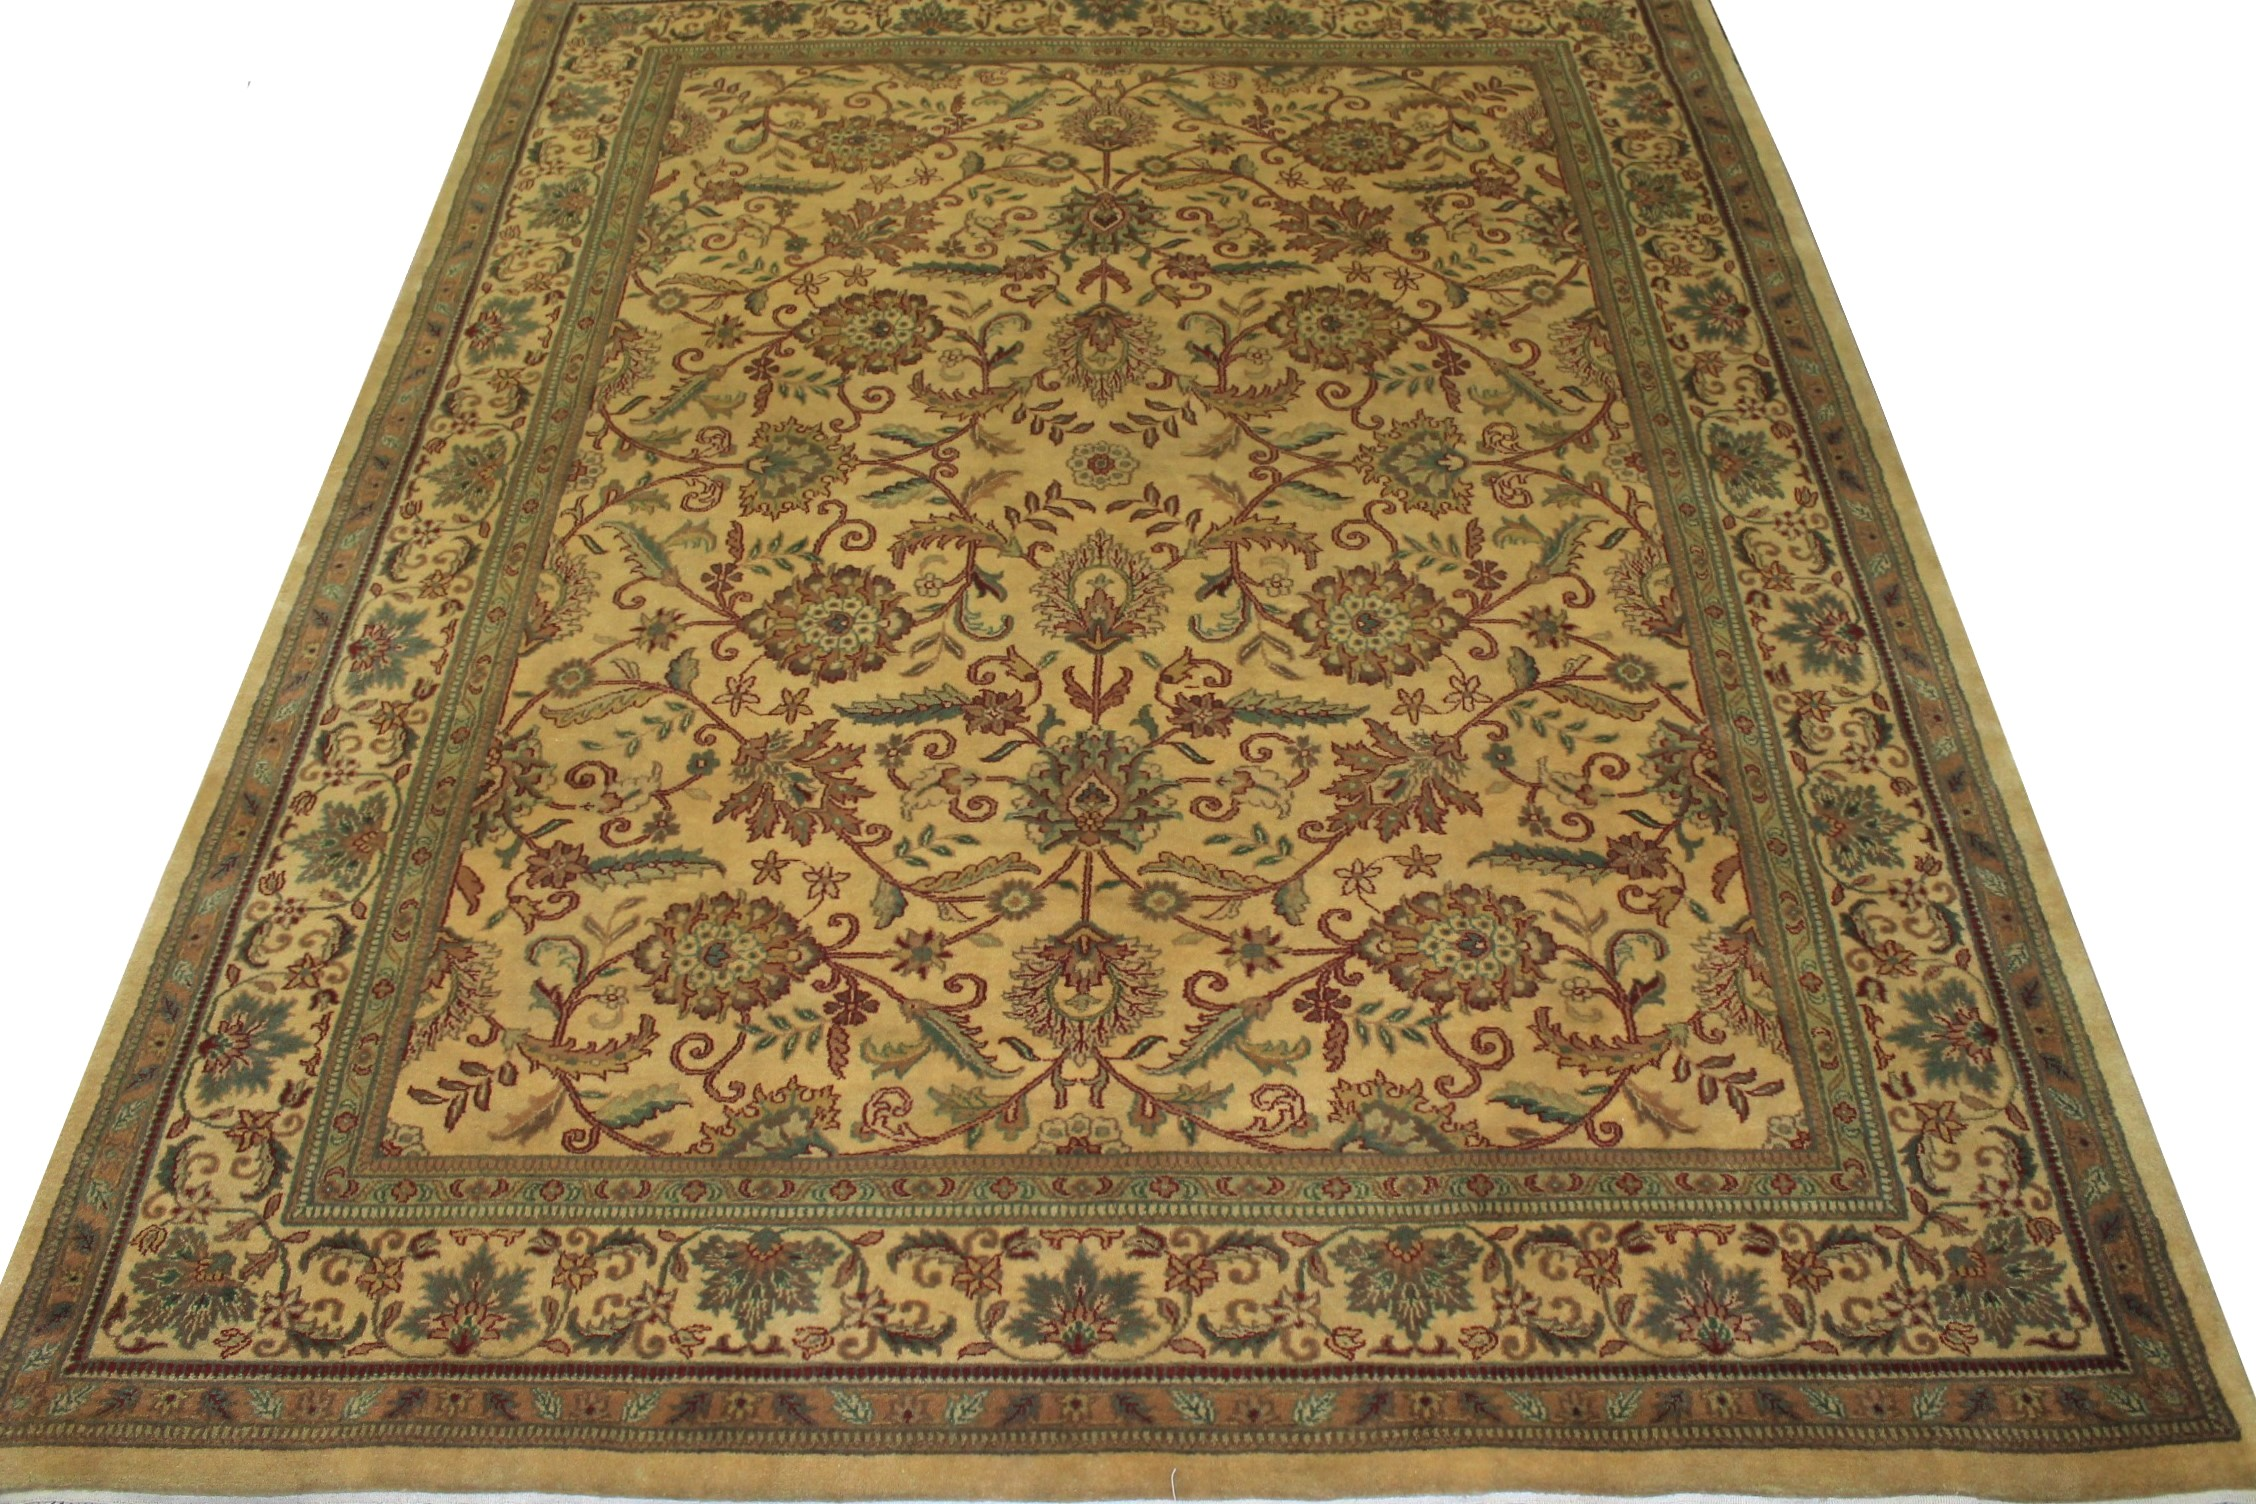 8x10 Traditional Hand Knotted Wool Area Rug - MR0151